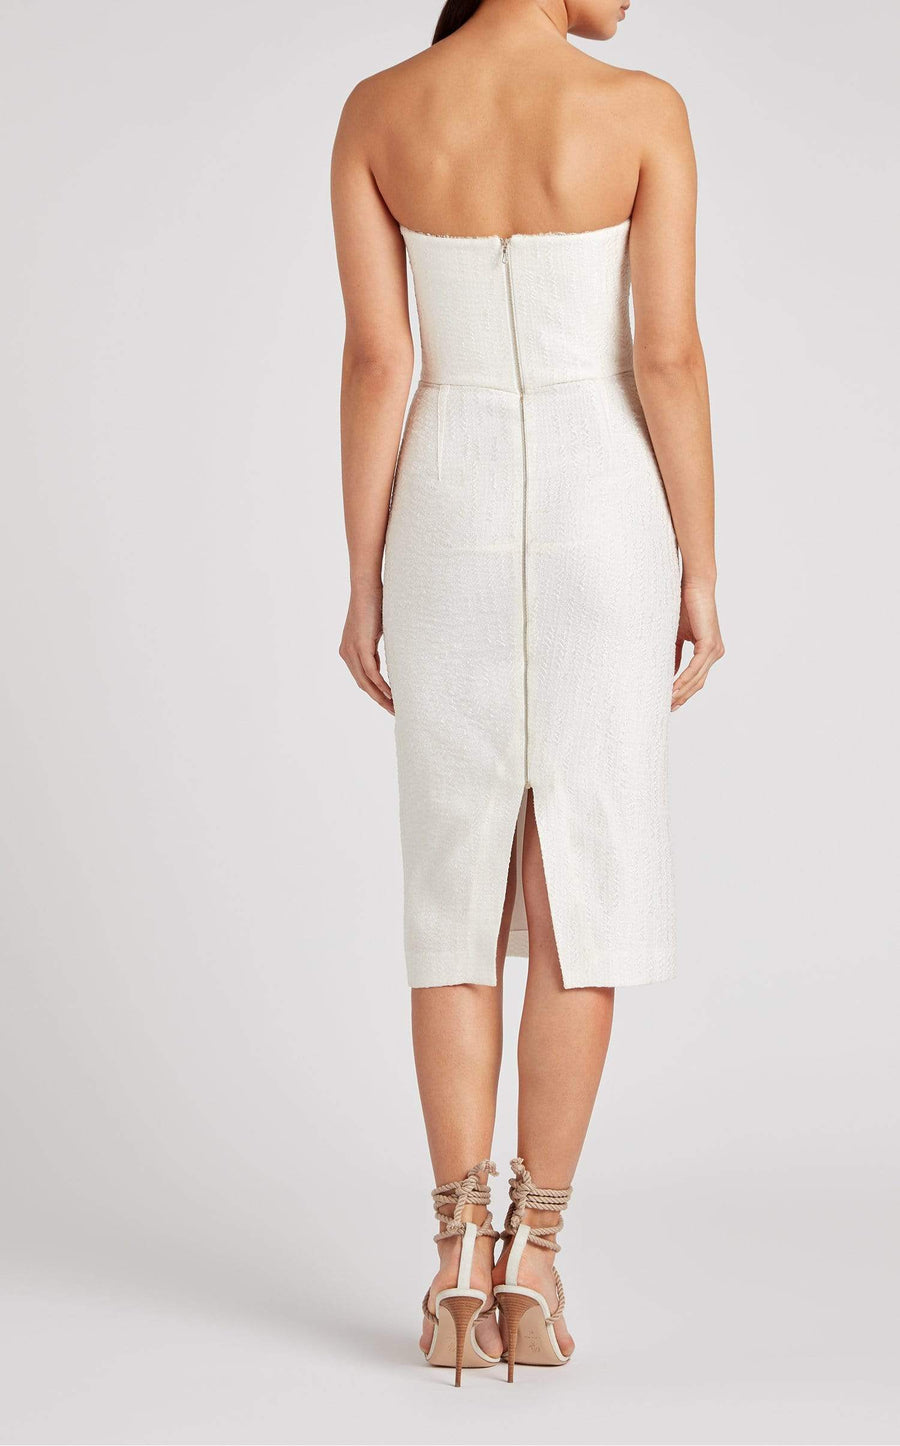 Aimee Dress In White from Roland Mouret